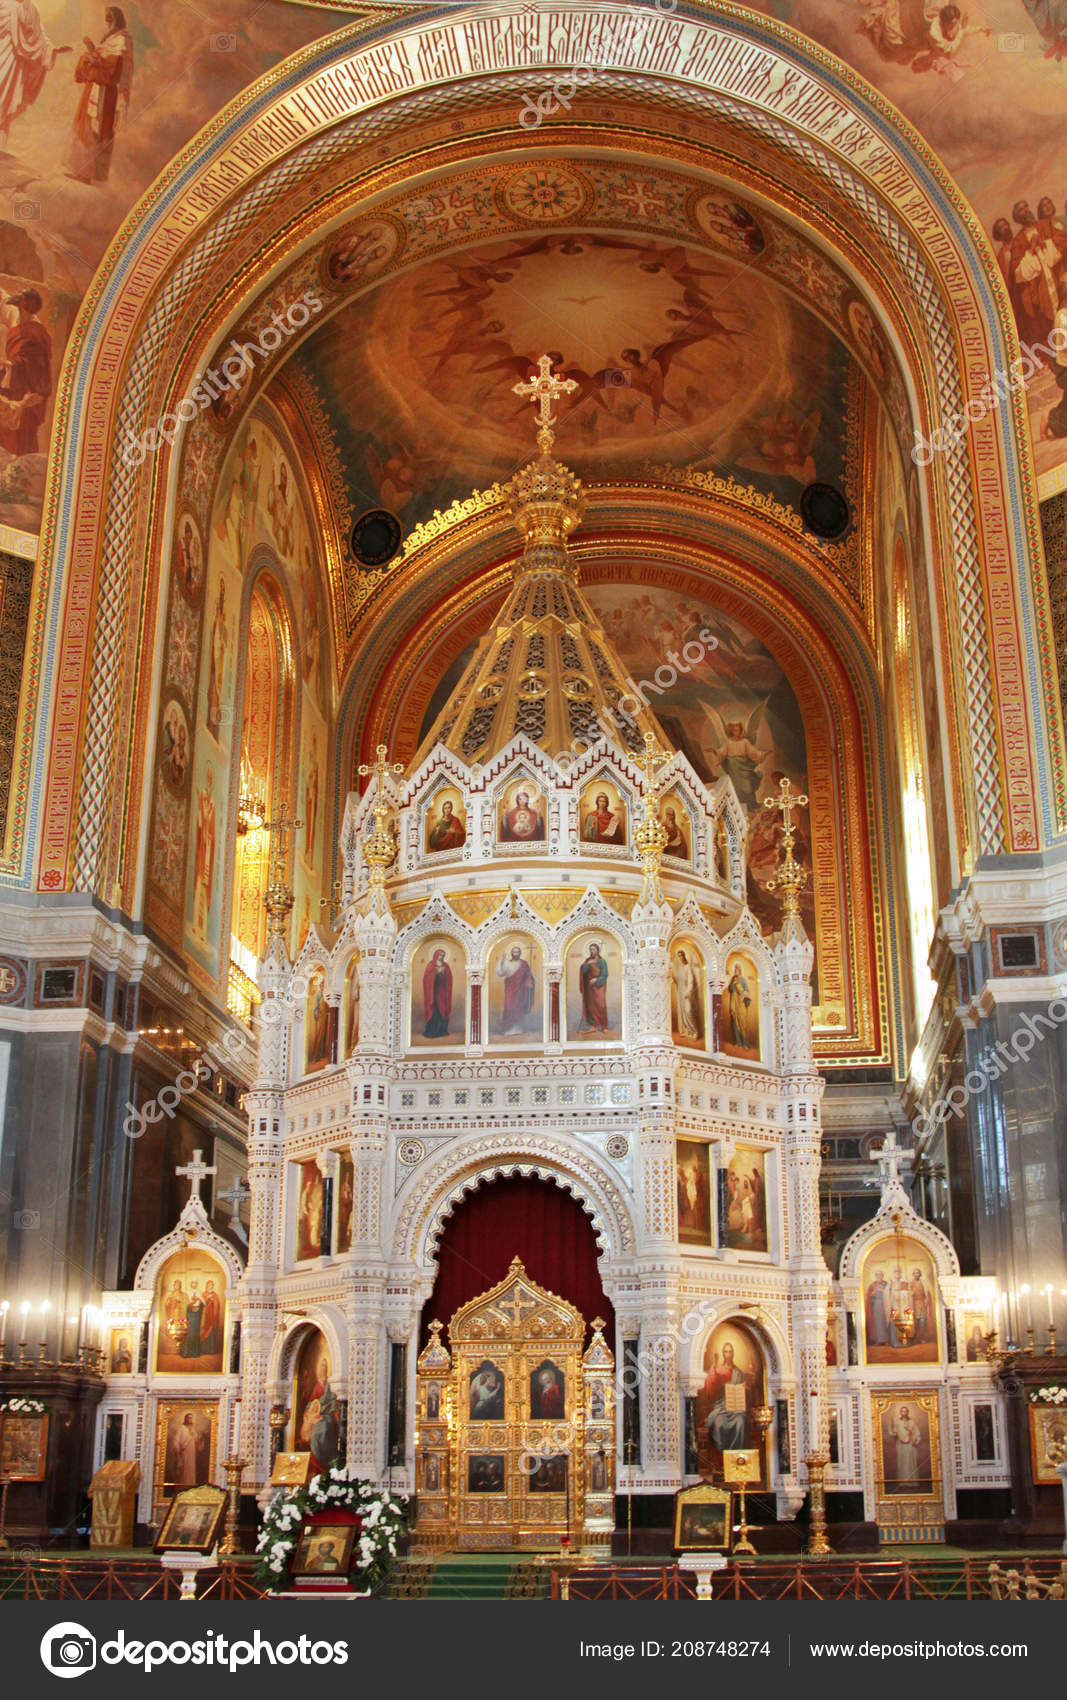 depositphotos_208748274-stock-photo-cathedral-russian-orthodox-church-interior.jpg